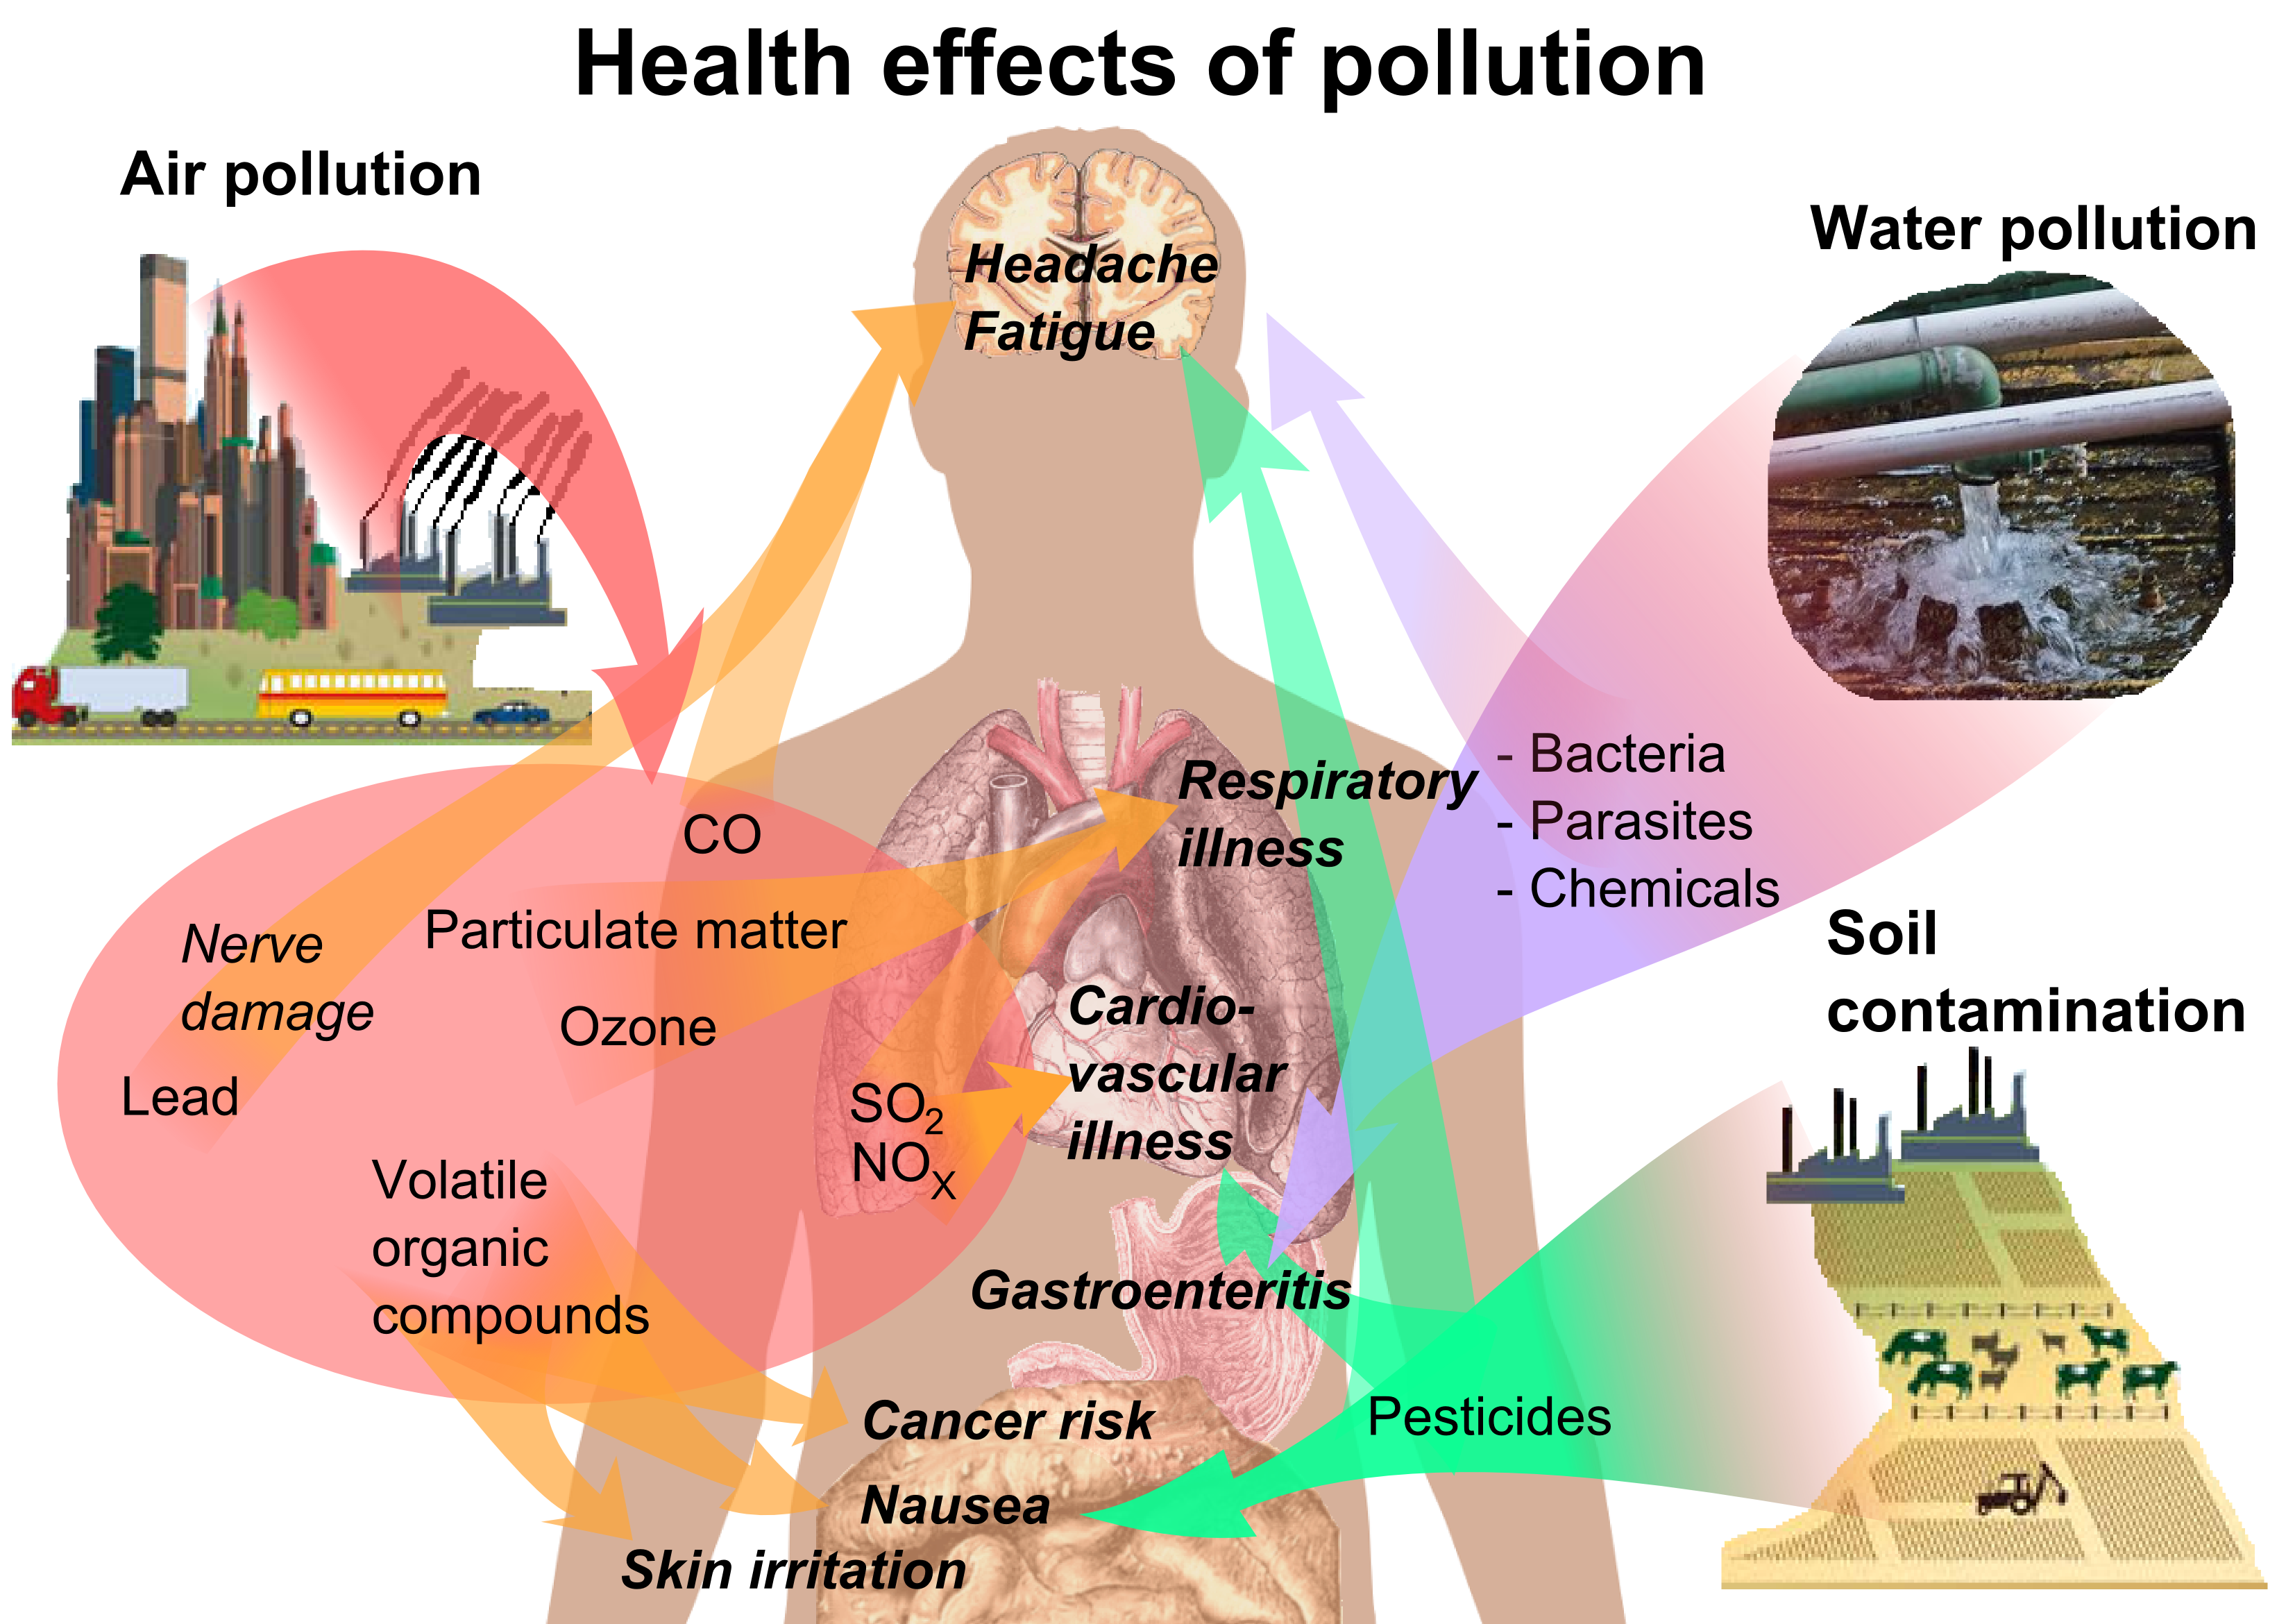 essay on vehicular pollution wikipedia Vehicular pollution, their effect on human heatlh and mitigation measures shivaji bhandarkar sr lecturer, department of automobile engineering, pusa institute vehicle engineering(ve.